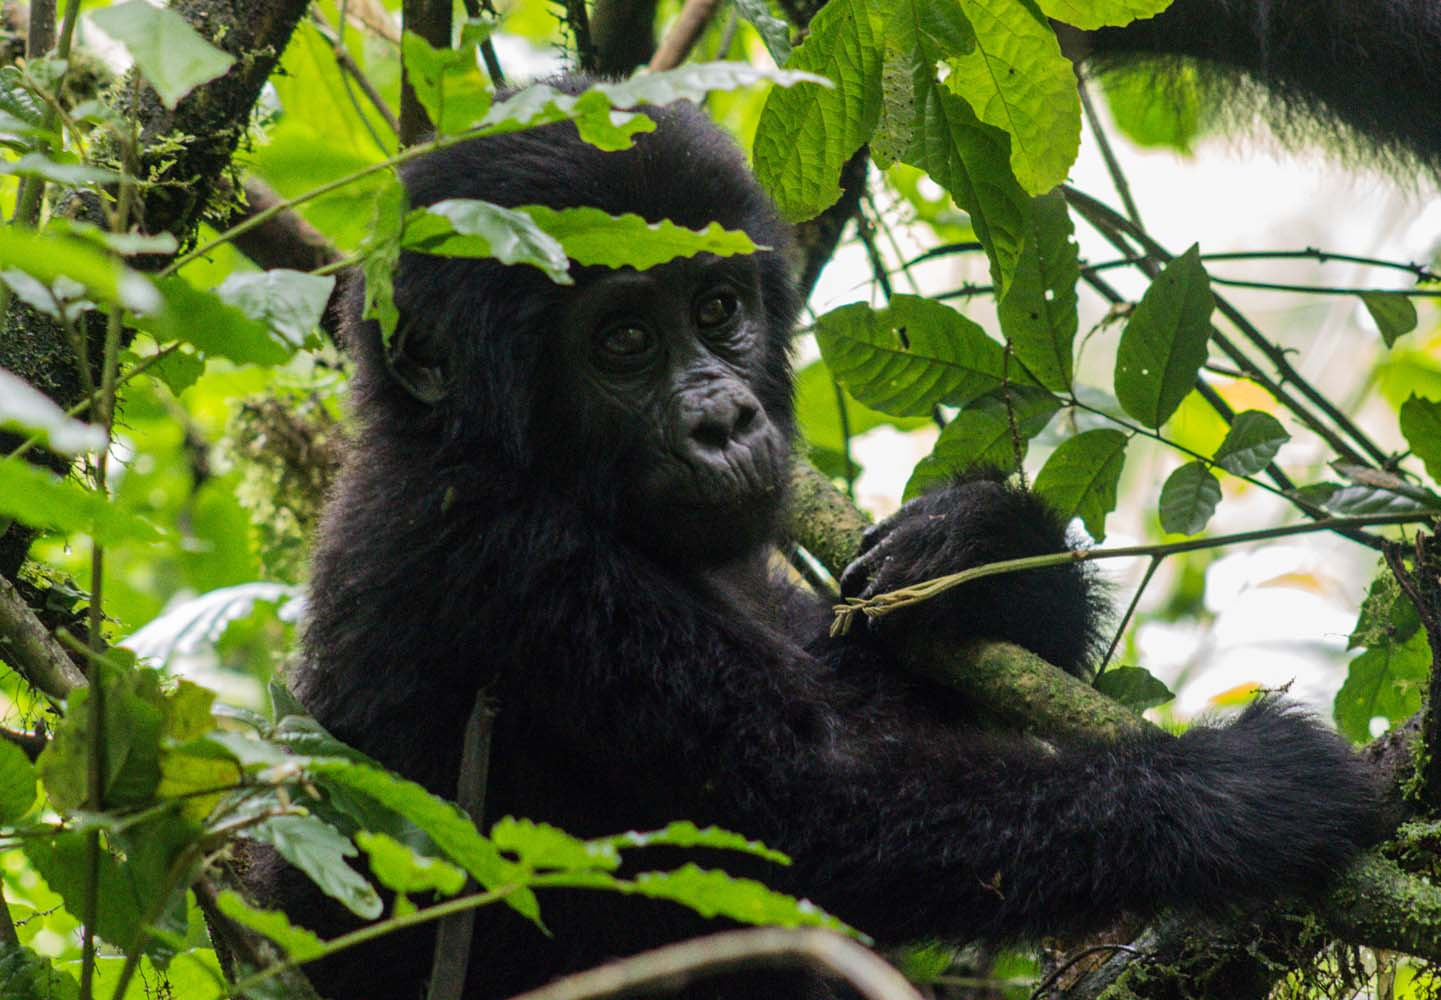 Is your ultimate travel dream to go gorilla trekking in Uganda, Africa? Join the club and read this post because there are a few things I wish I had known before venturing into Bwindi Impenetrable National Park to find mountain gorillas in the mist.